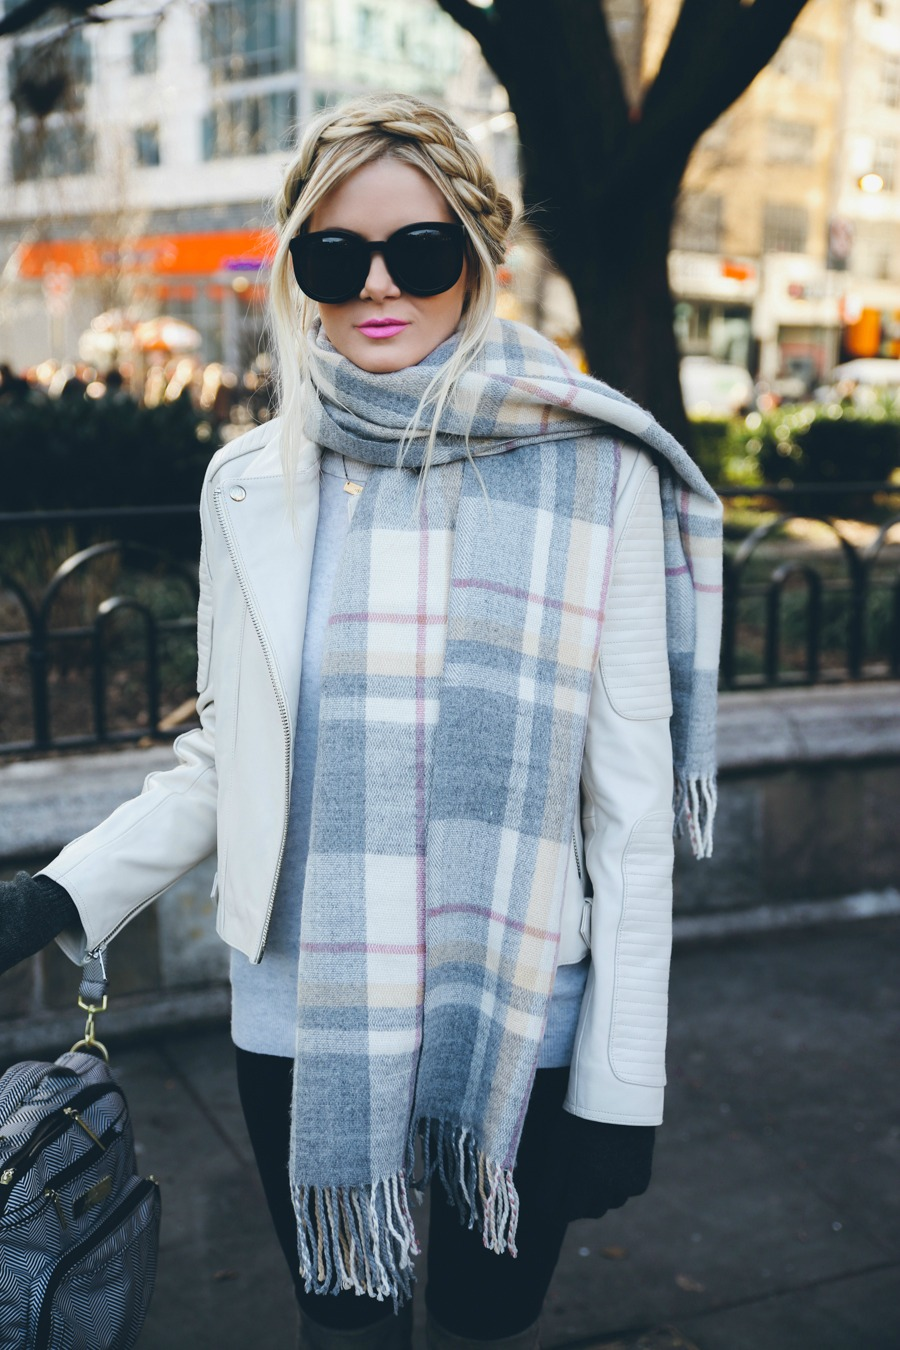 Amber Fillerup Clark is wearing an oversized grey check with tassels from Asos